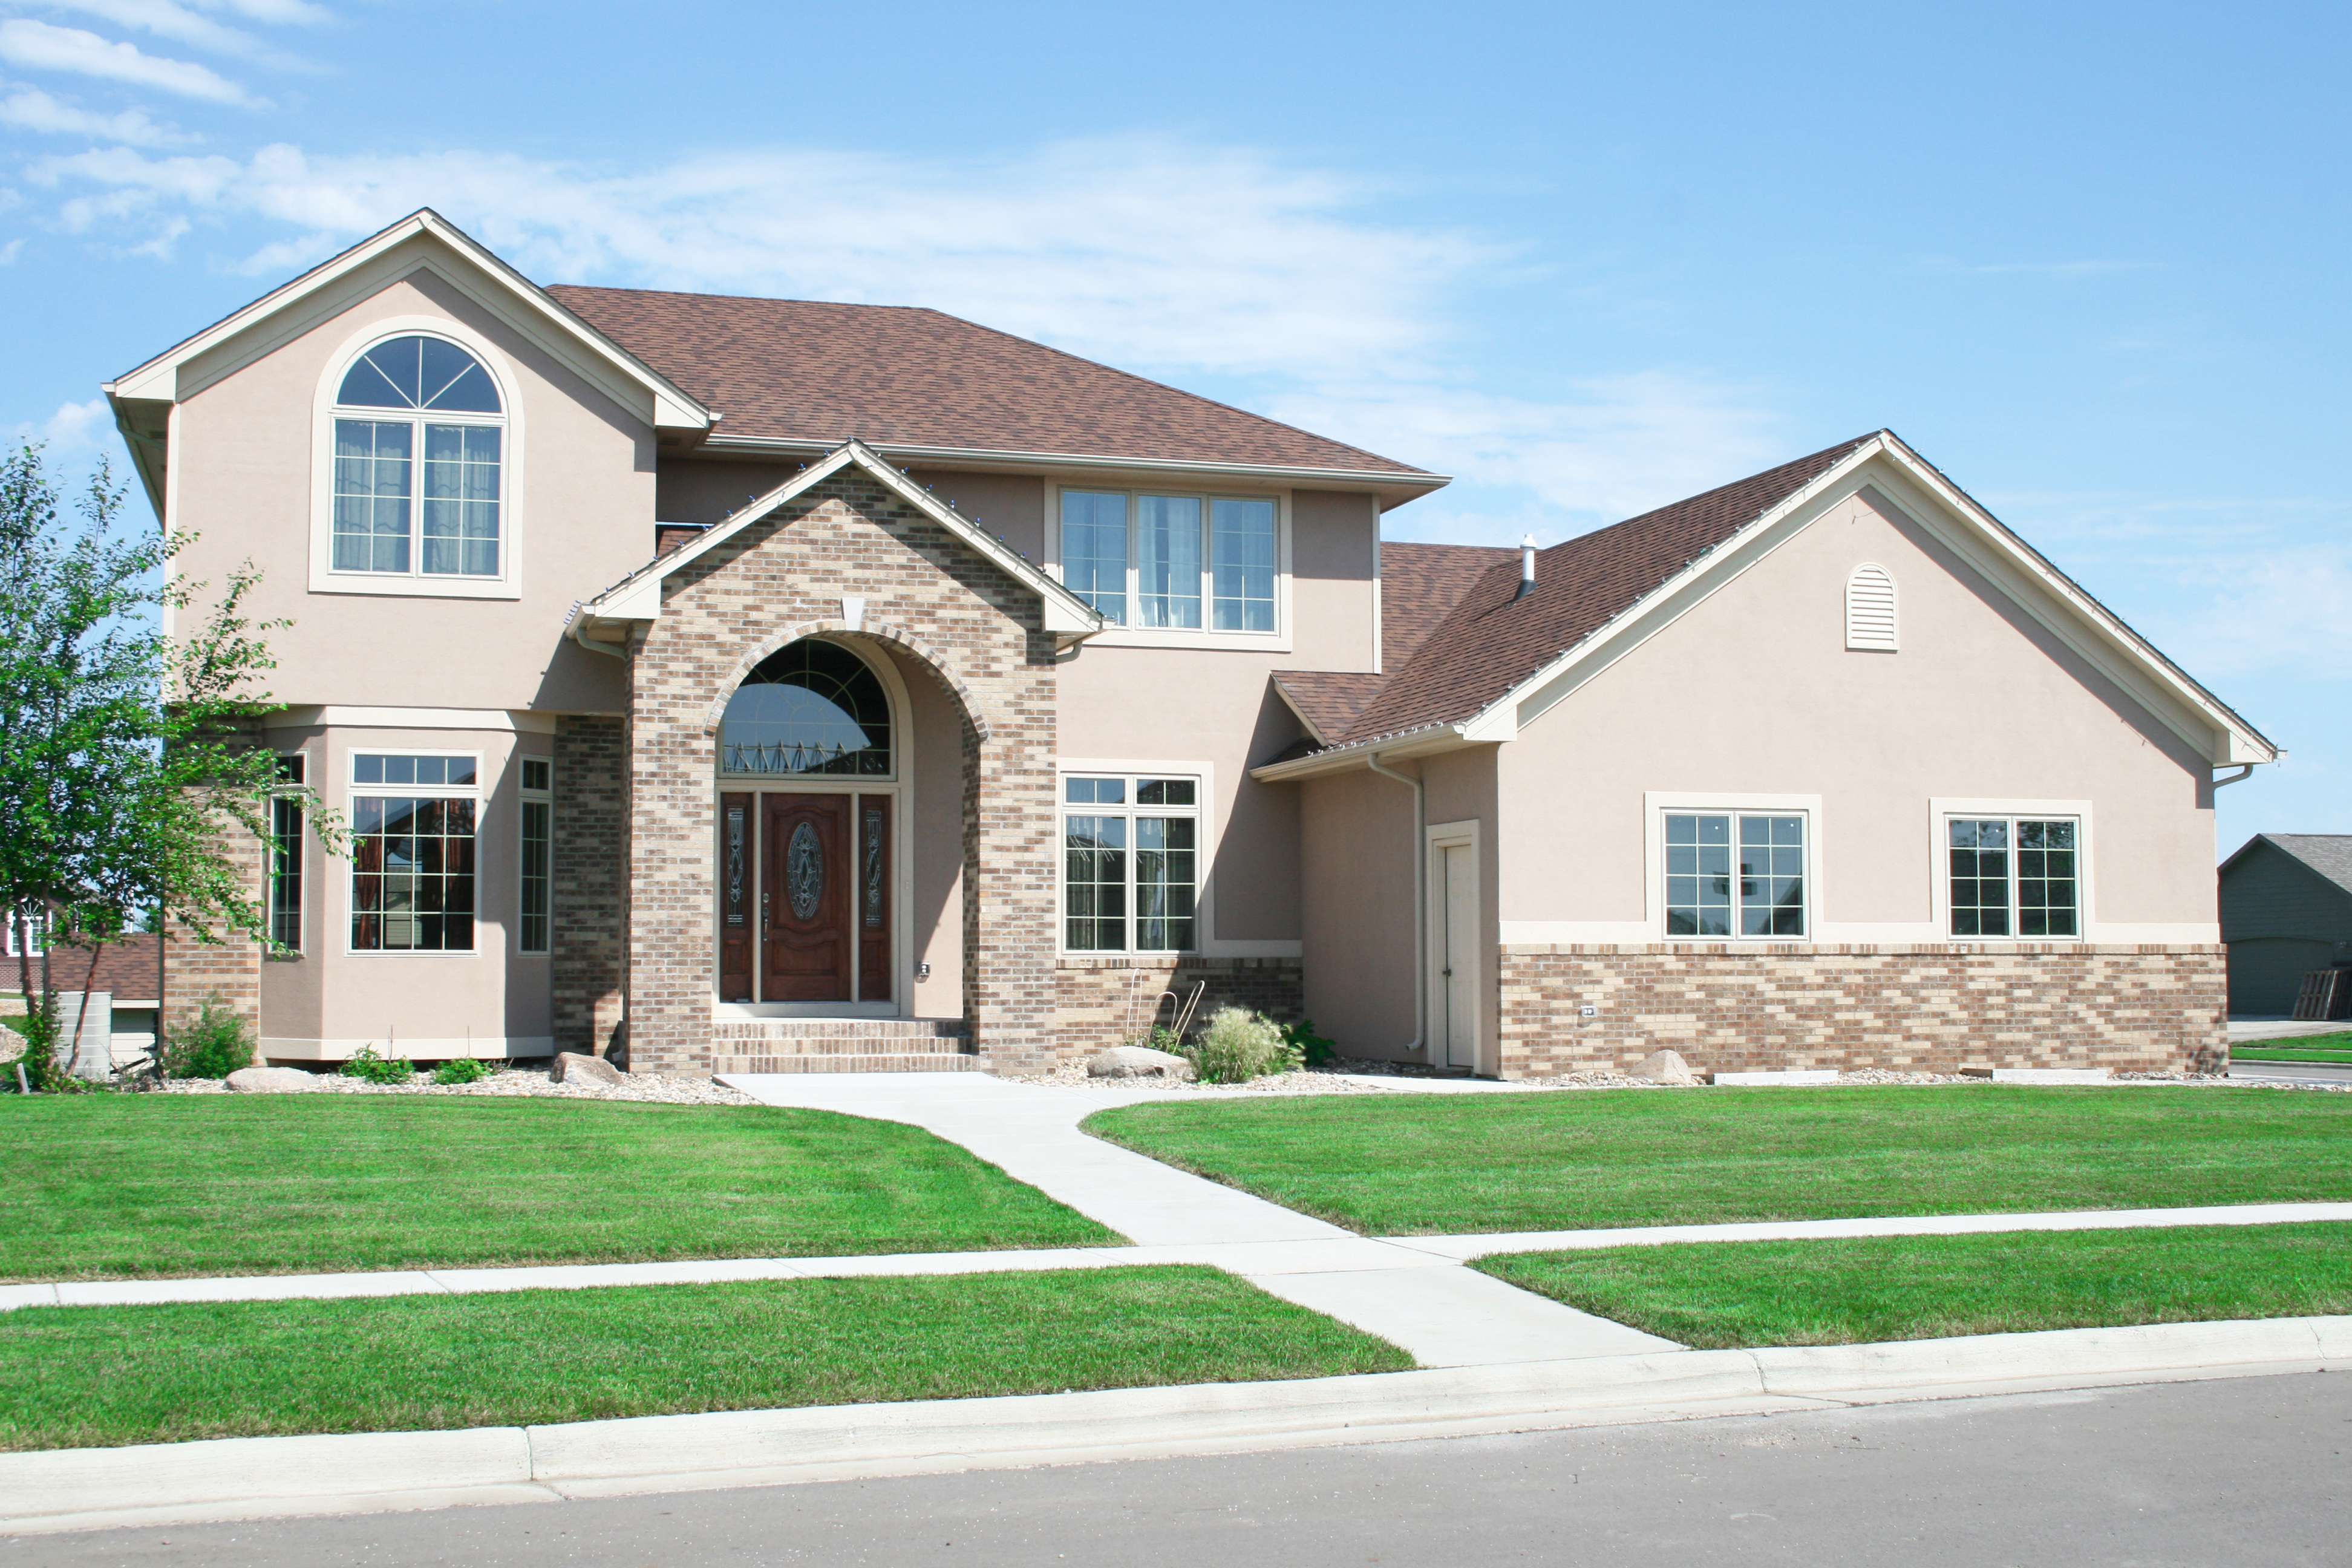 -Dana Oklahoma Custom Builder Member Beautiful Home & What our customers are saying about us.American eBuilder